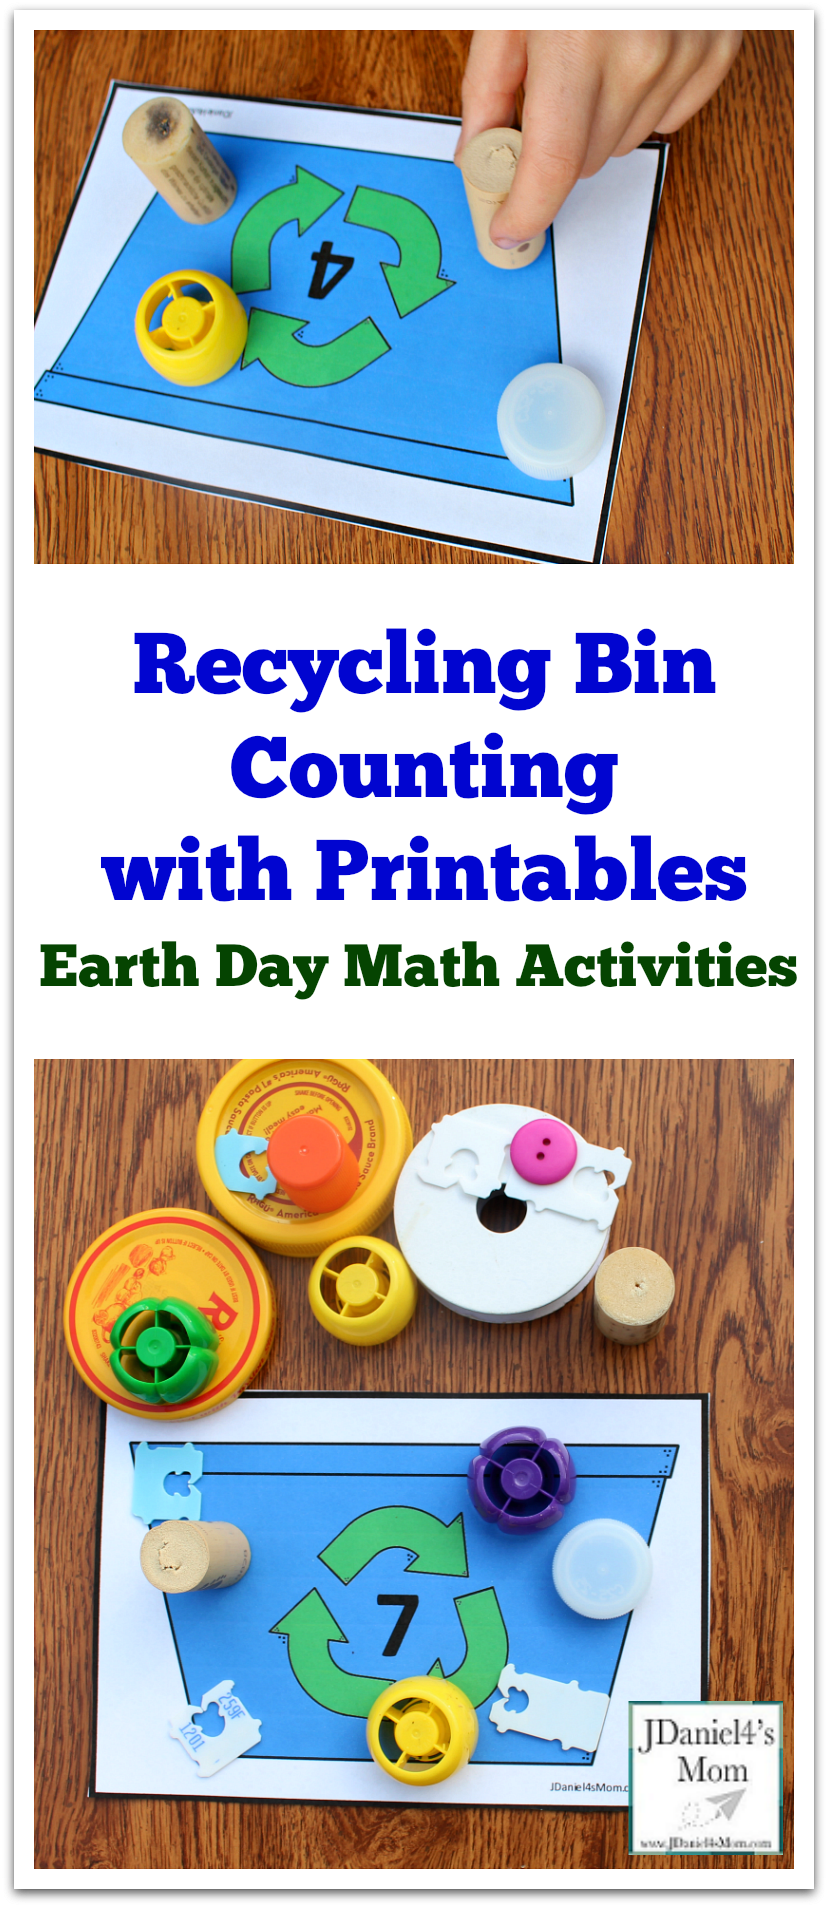 Earth Day Math Activities Recycling Bin Counting With Printables Kids Will Love Explori Recycling Activities For Kids Earth Day Activities Recycle Preschool [ 1907 x 828 Pixel ]